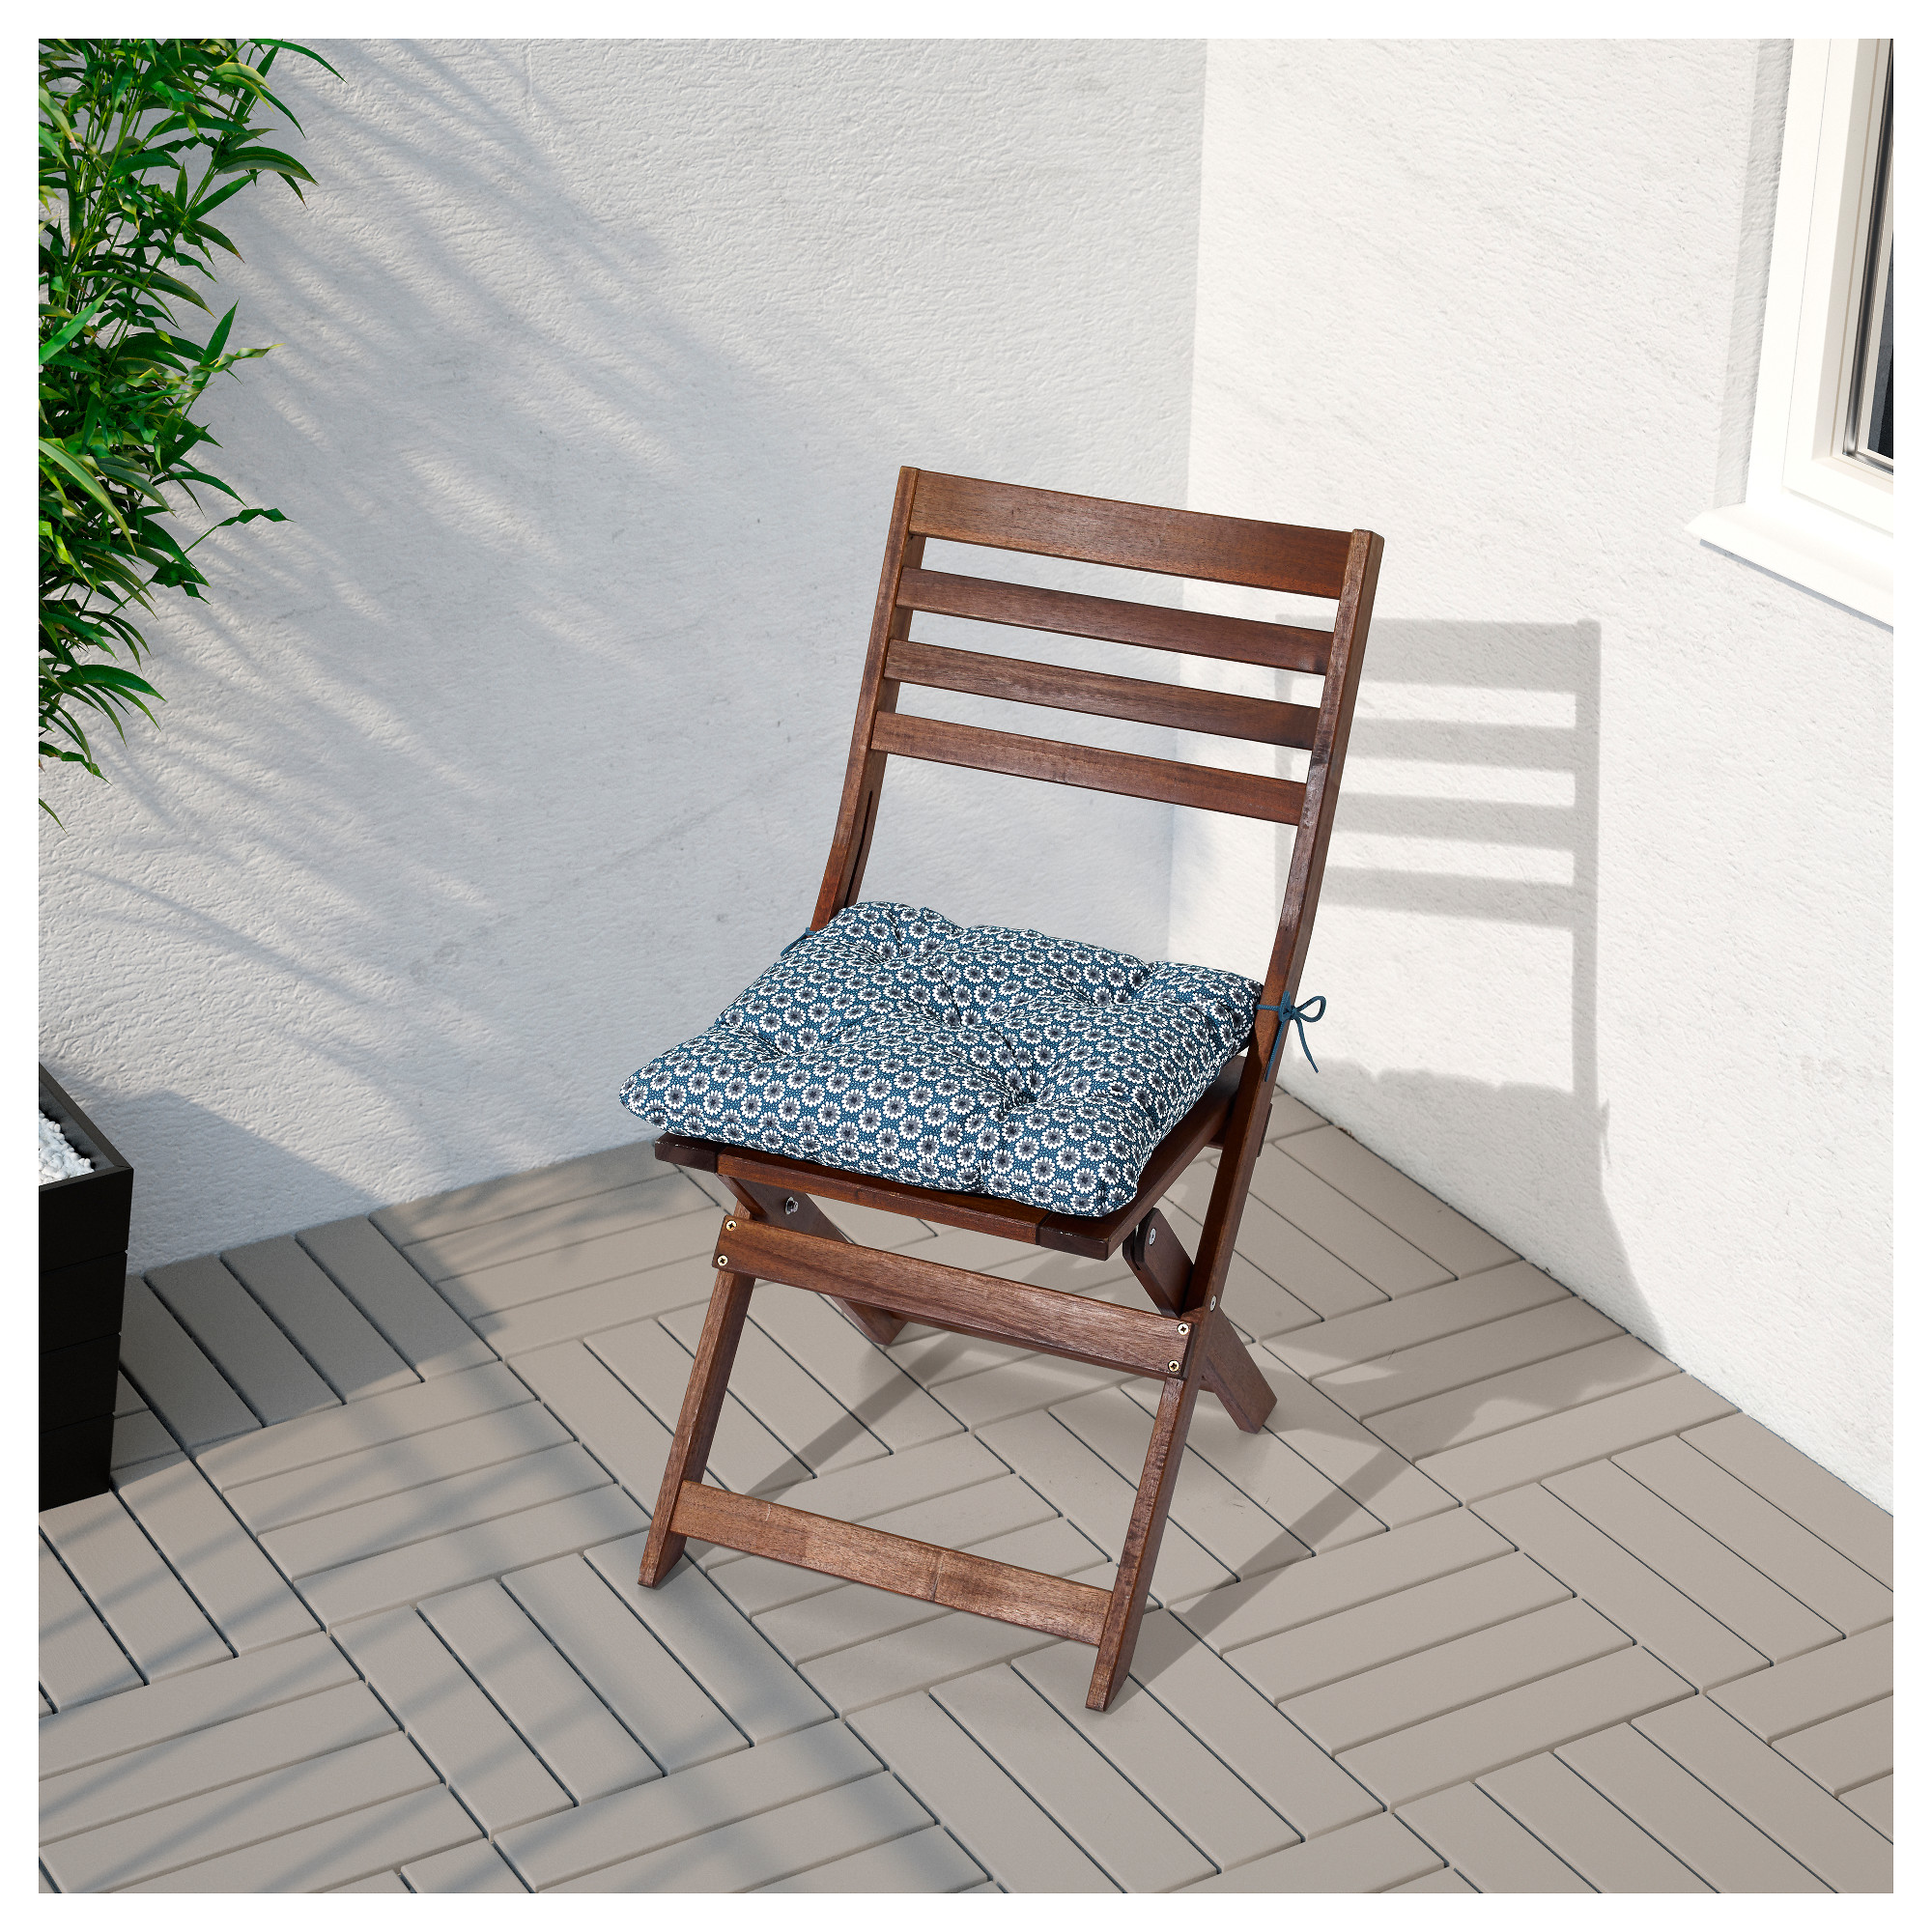 Cheap Outdoor Folding Chairs.Ikea Lithuania Shop For Furniture Lighting Home